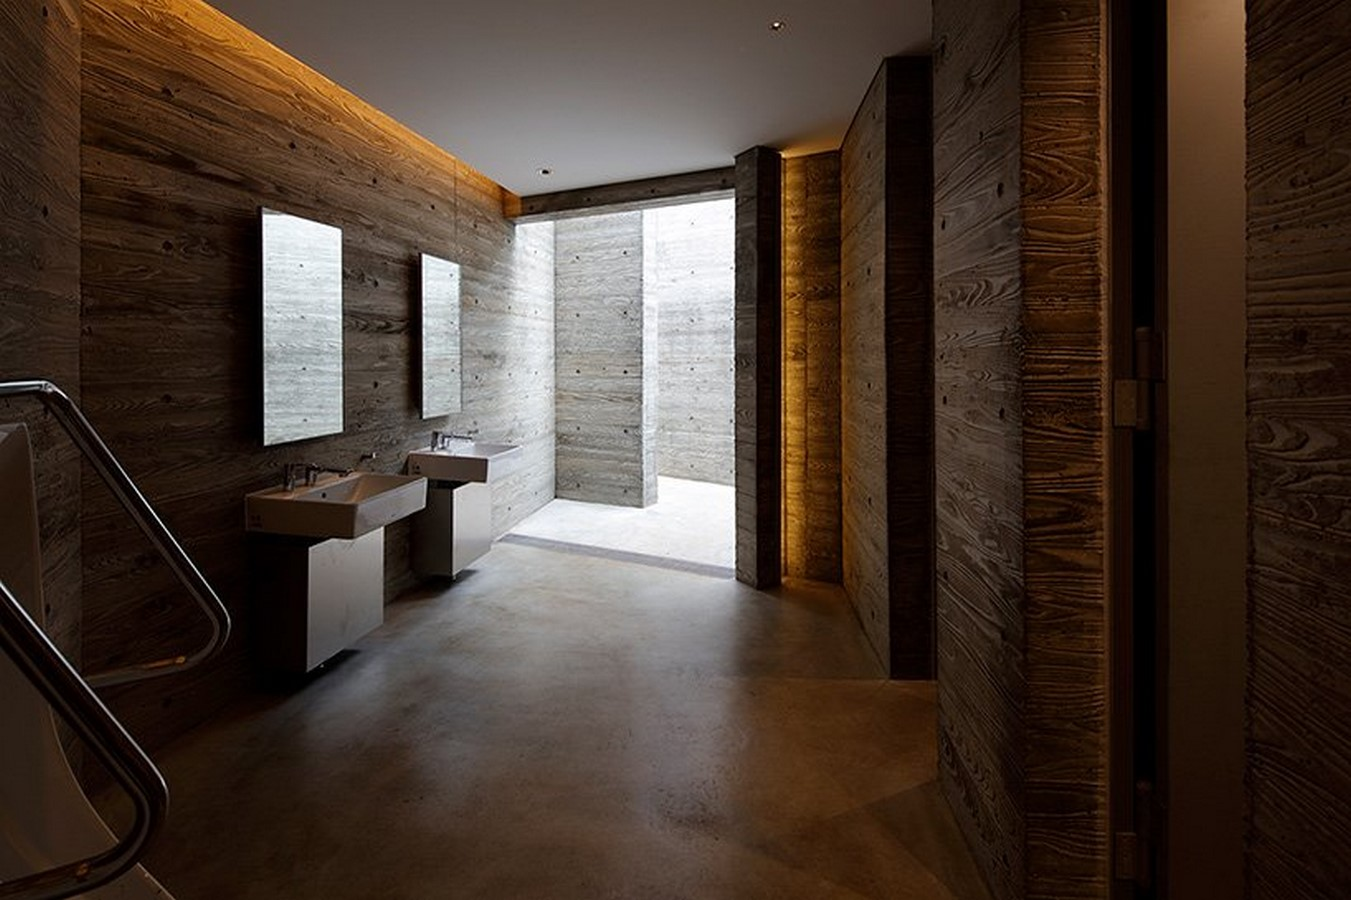 Concrete Tokyo toilet designed by Wonderwall references primitive Japanese huts - Sheet4